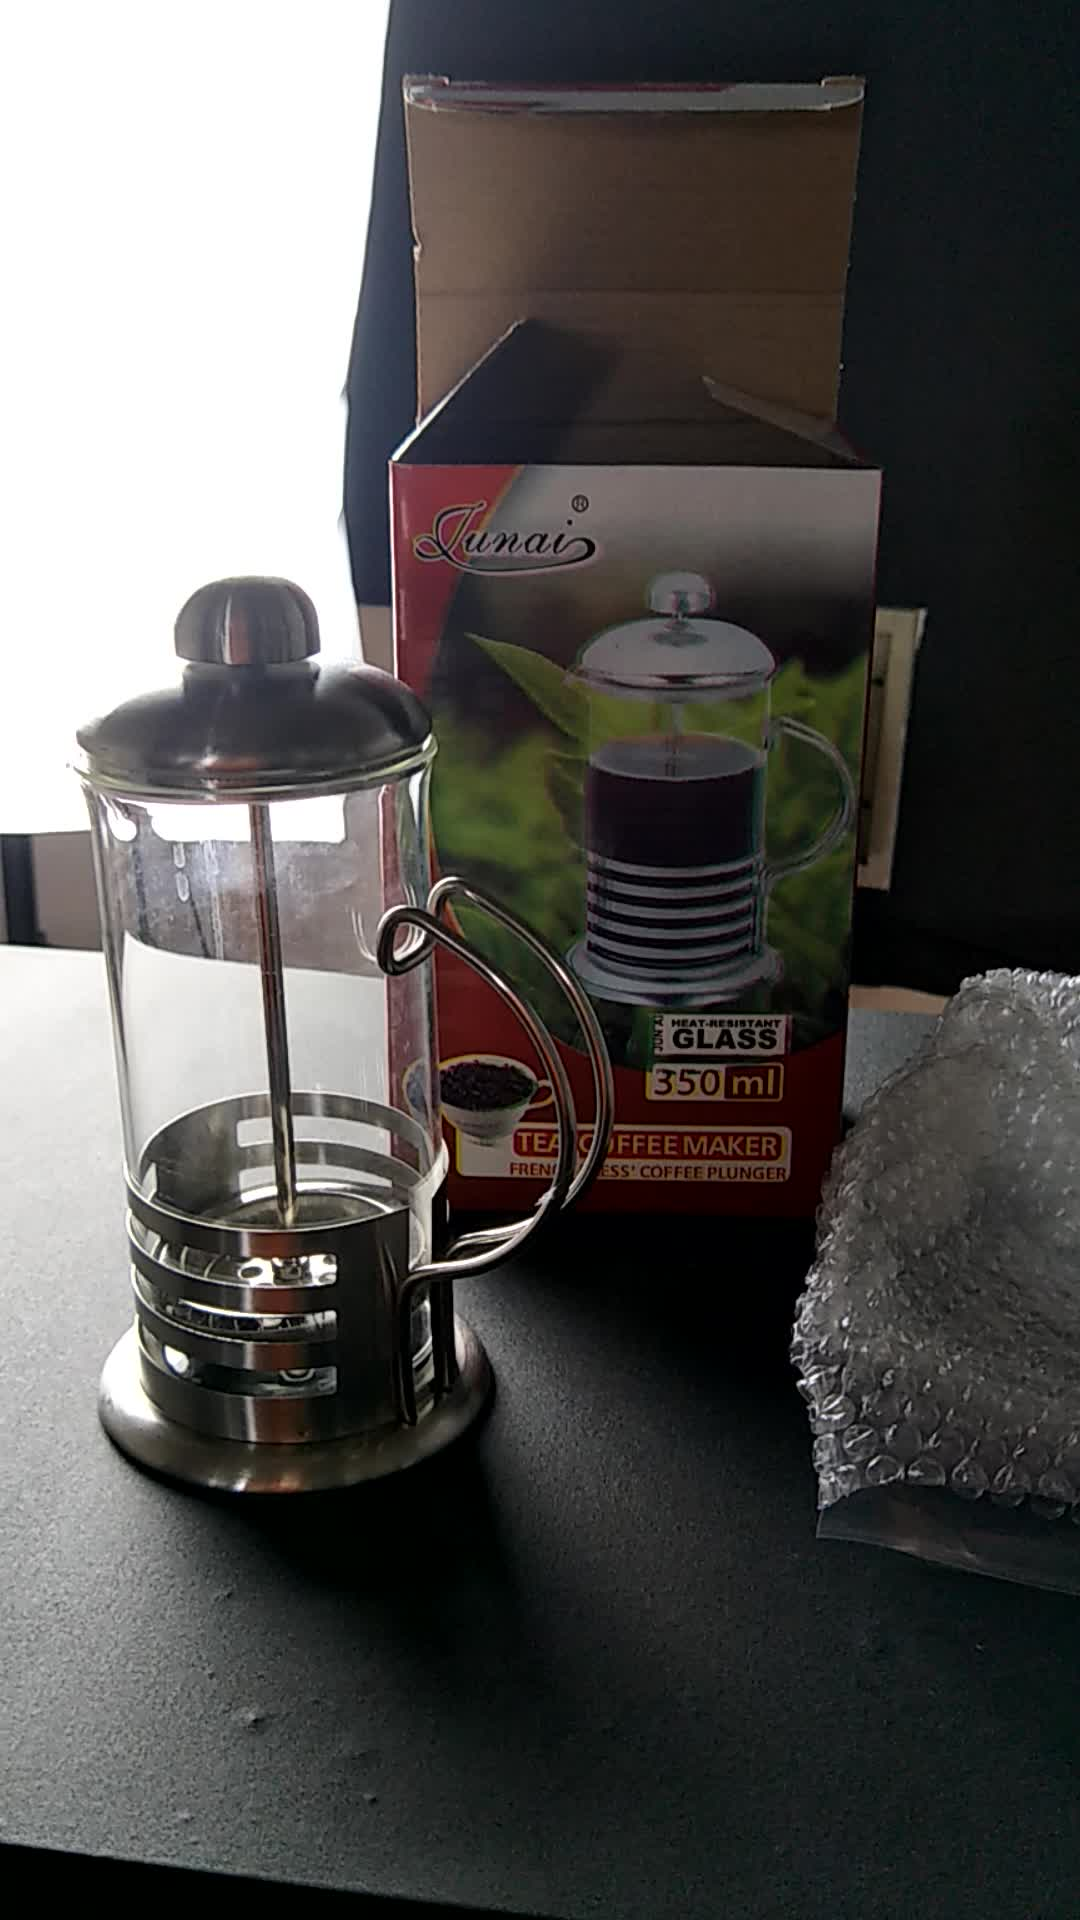 2017 Hot sale amazon high quality stainless steel espresso maker coffee maker french press